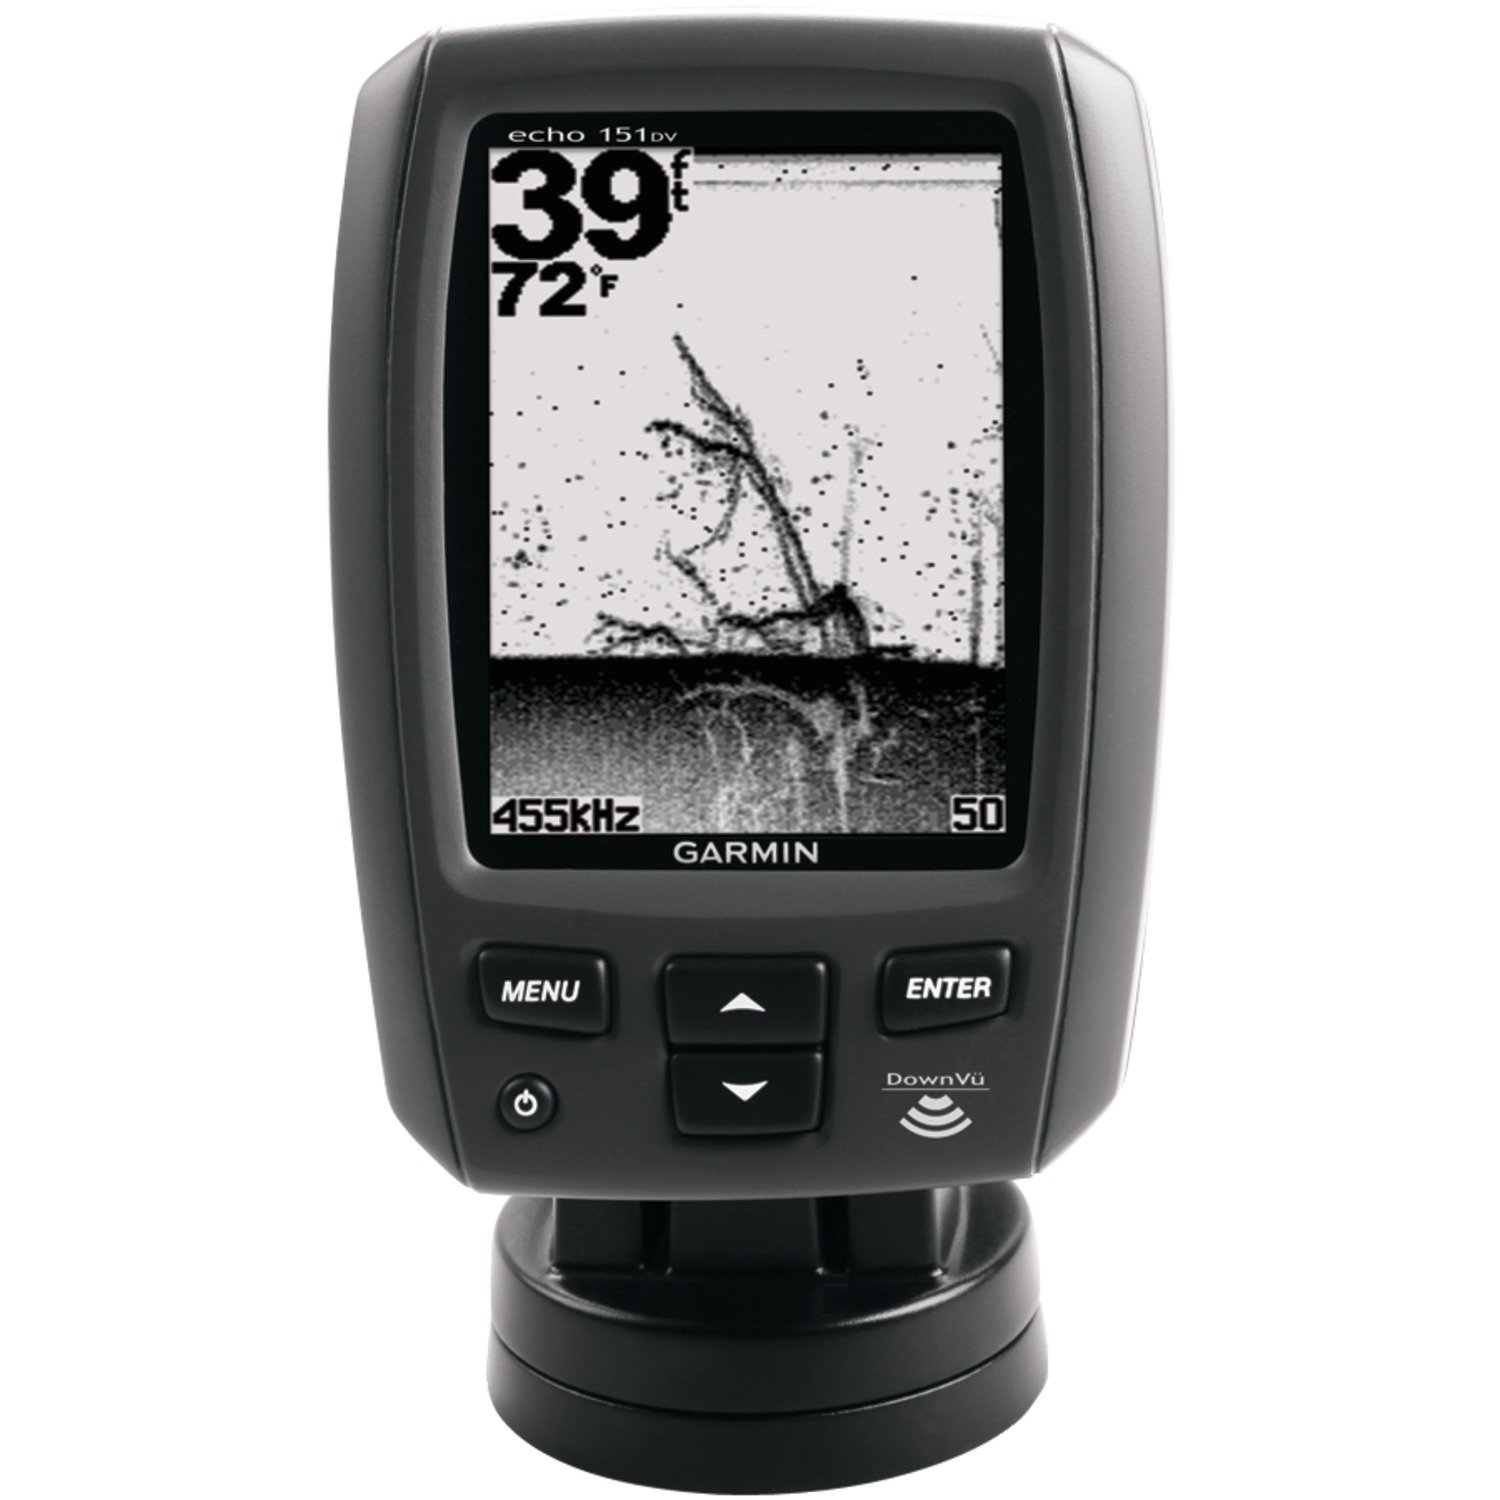 71jxM1blWnL._SL1500_ amazon com garmin echo 151dv us and canada with transducer cell wiring diagram for fish finder at alyssarenee.co